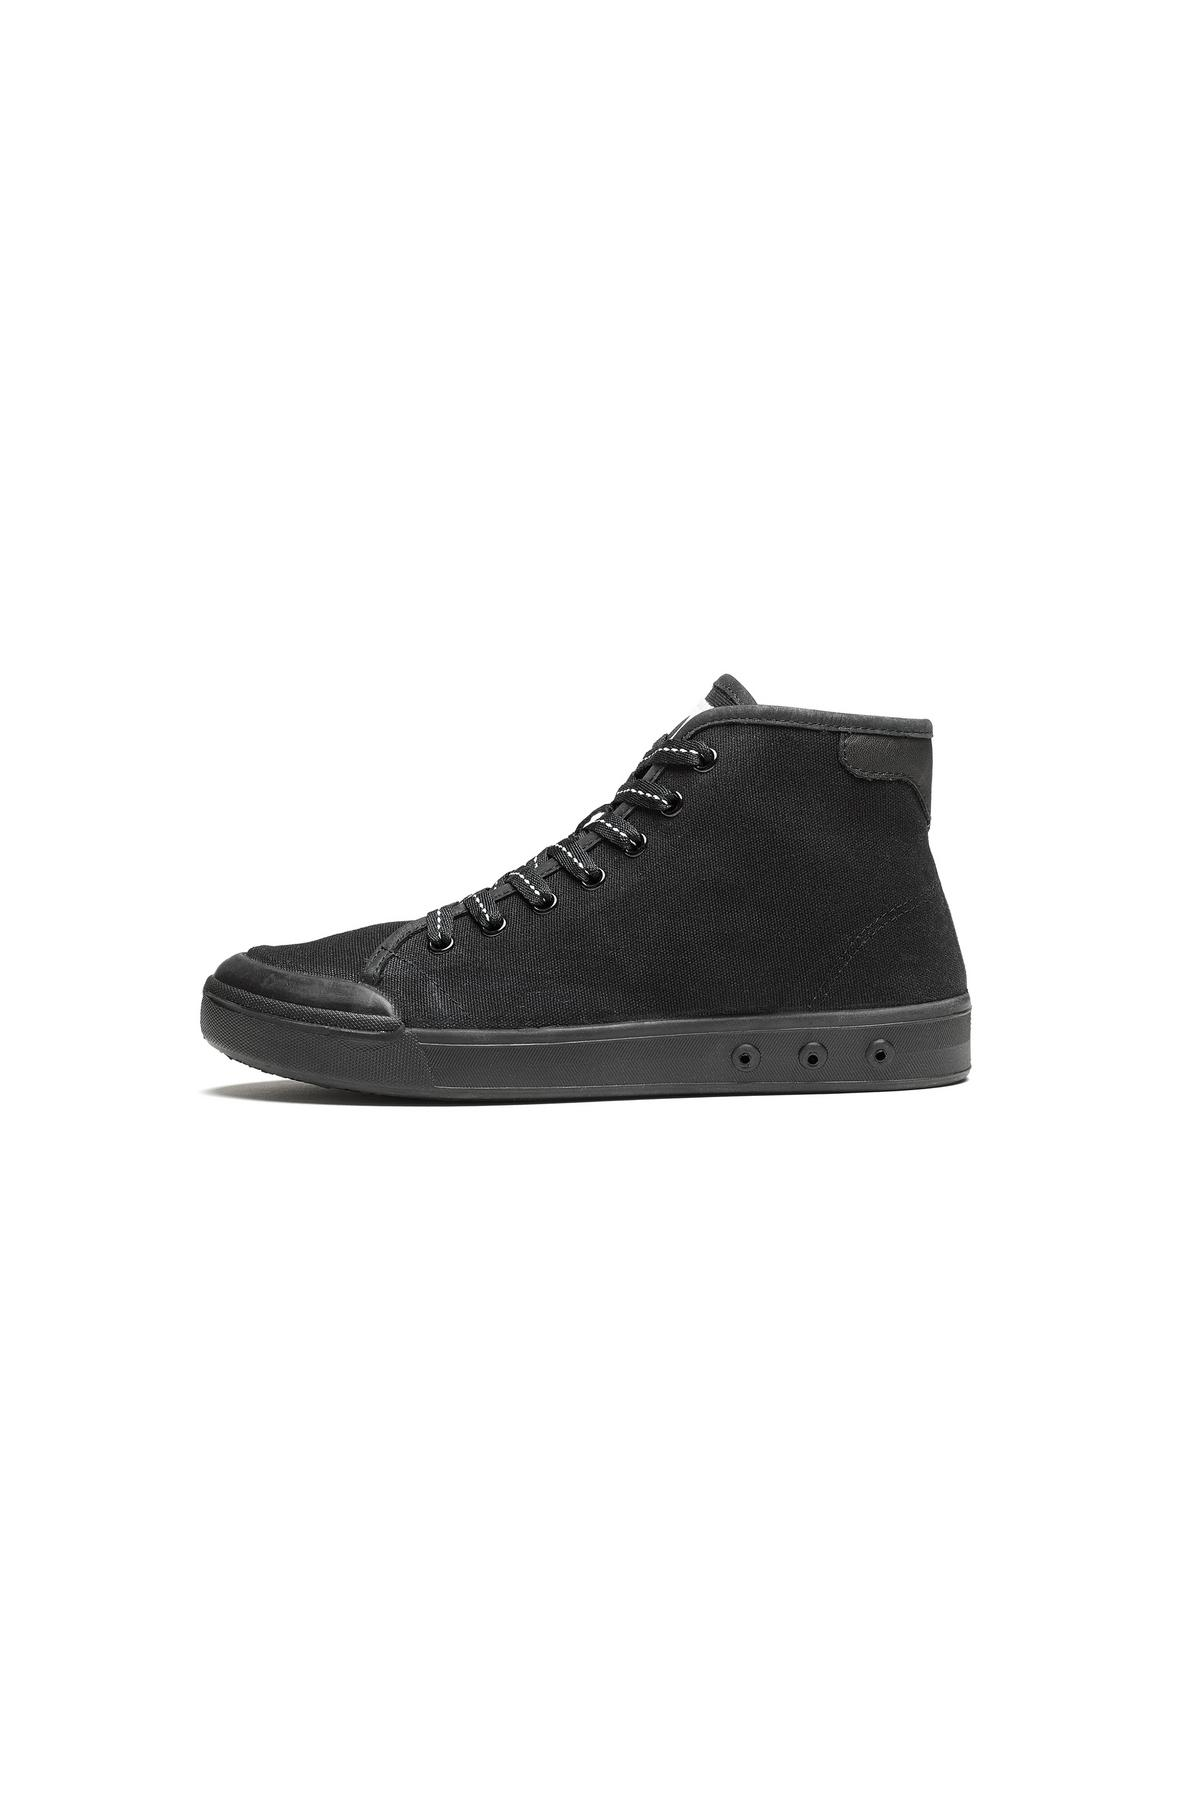 RAG & BONE WOMENS STANDARD ISSUE HIGH TOP